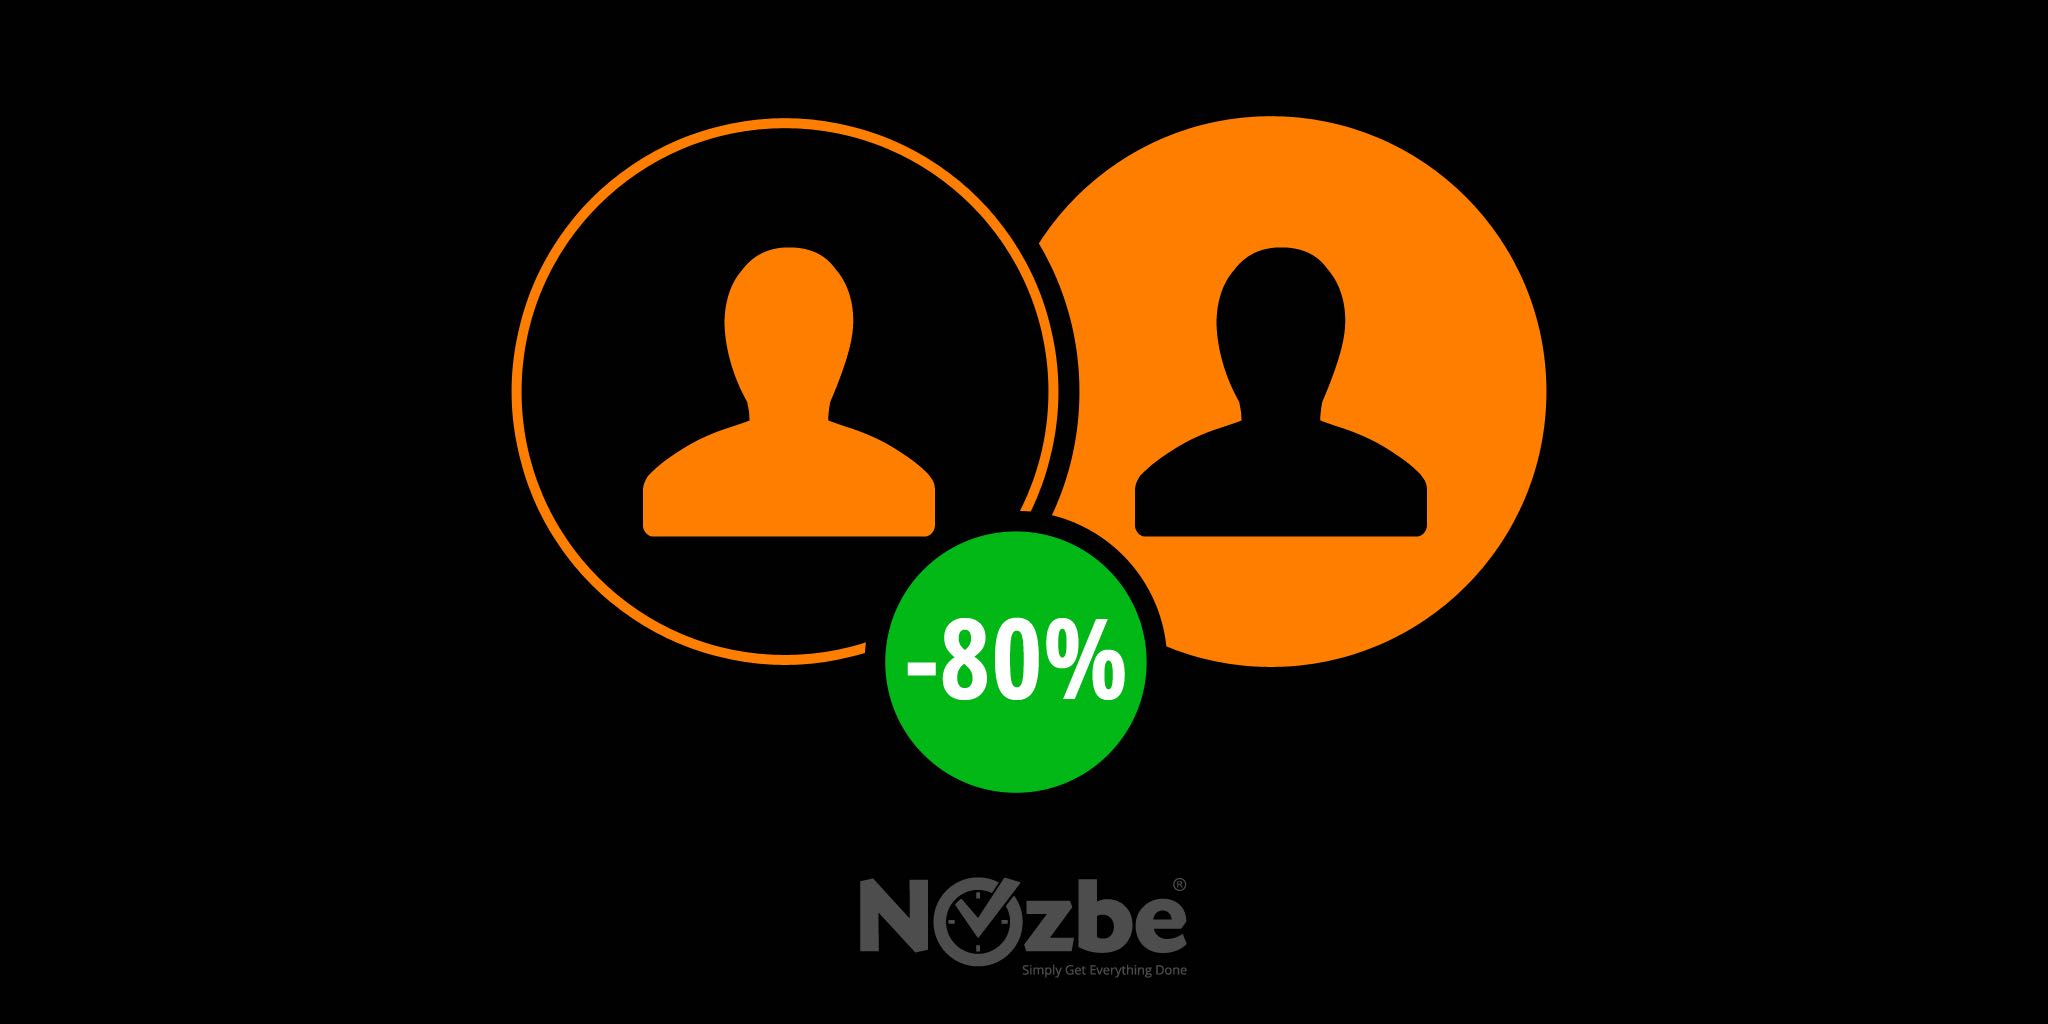 Try Nozbe 2-for-1 up to 80%